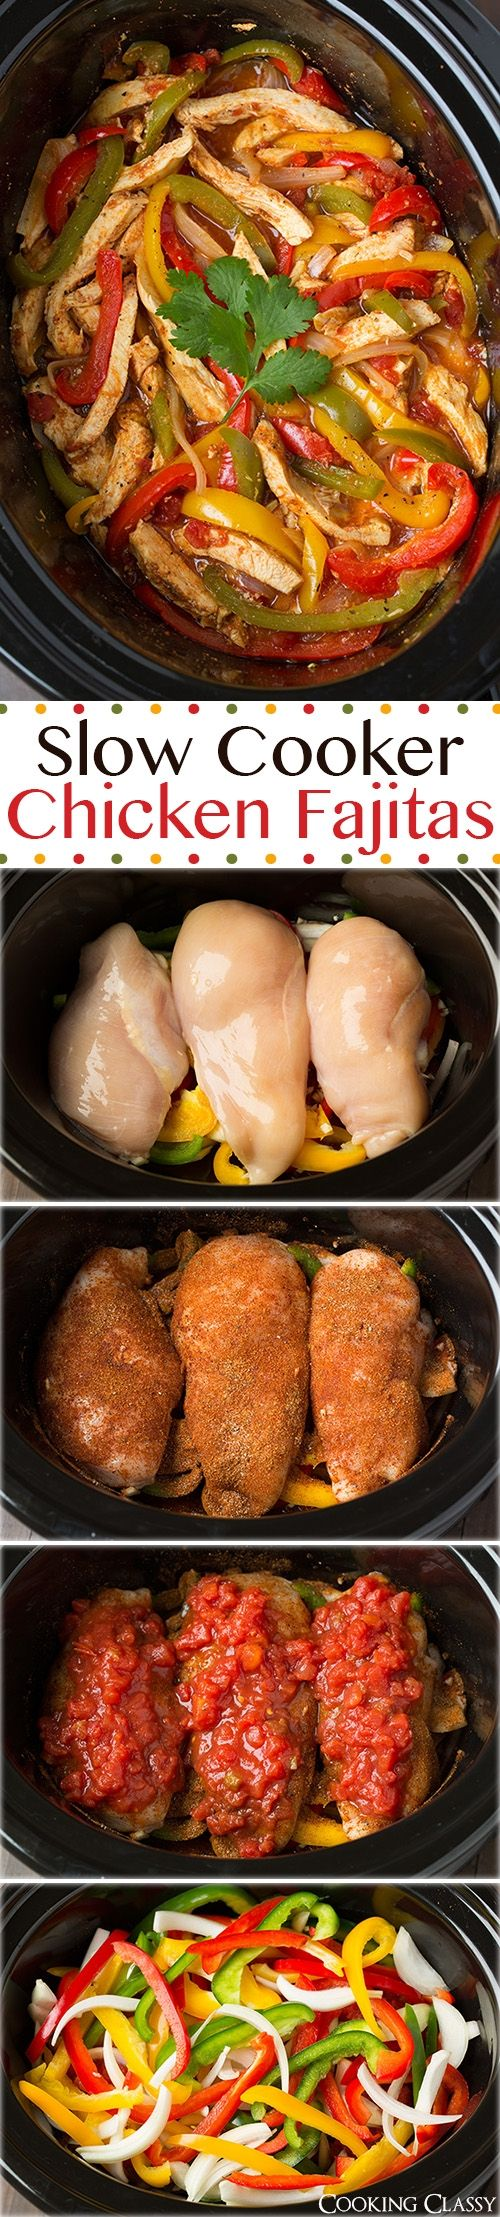 Slow Cooker Chicken Fajitas - these are easiest chicken fajitas yet they taste AMAZING!! My new go to recipe for fajitas. #weightlossbeforeandafter